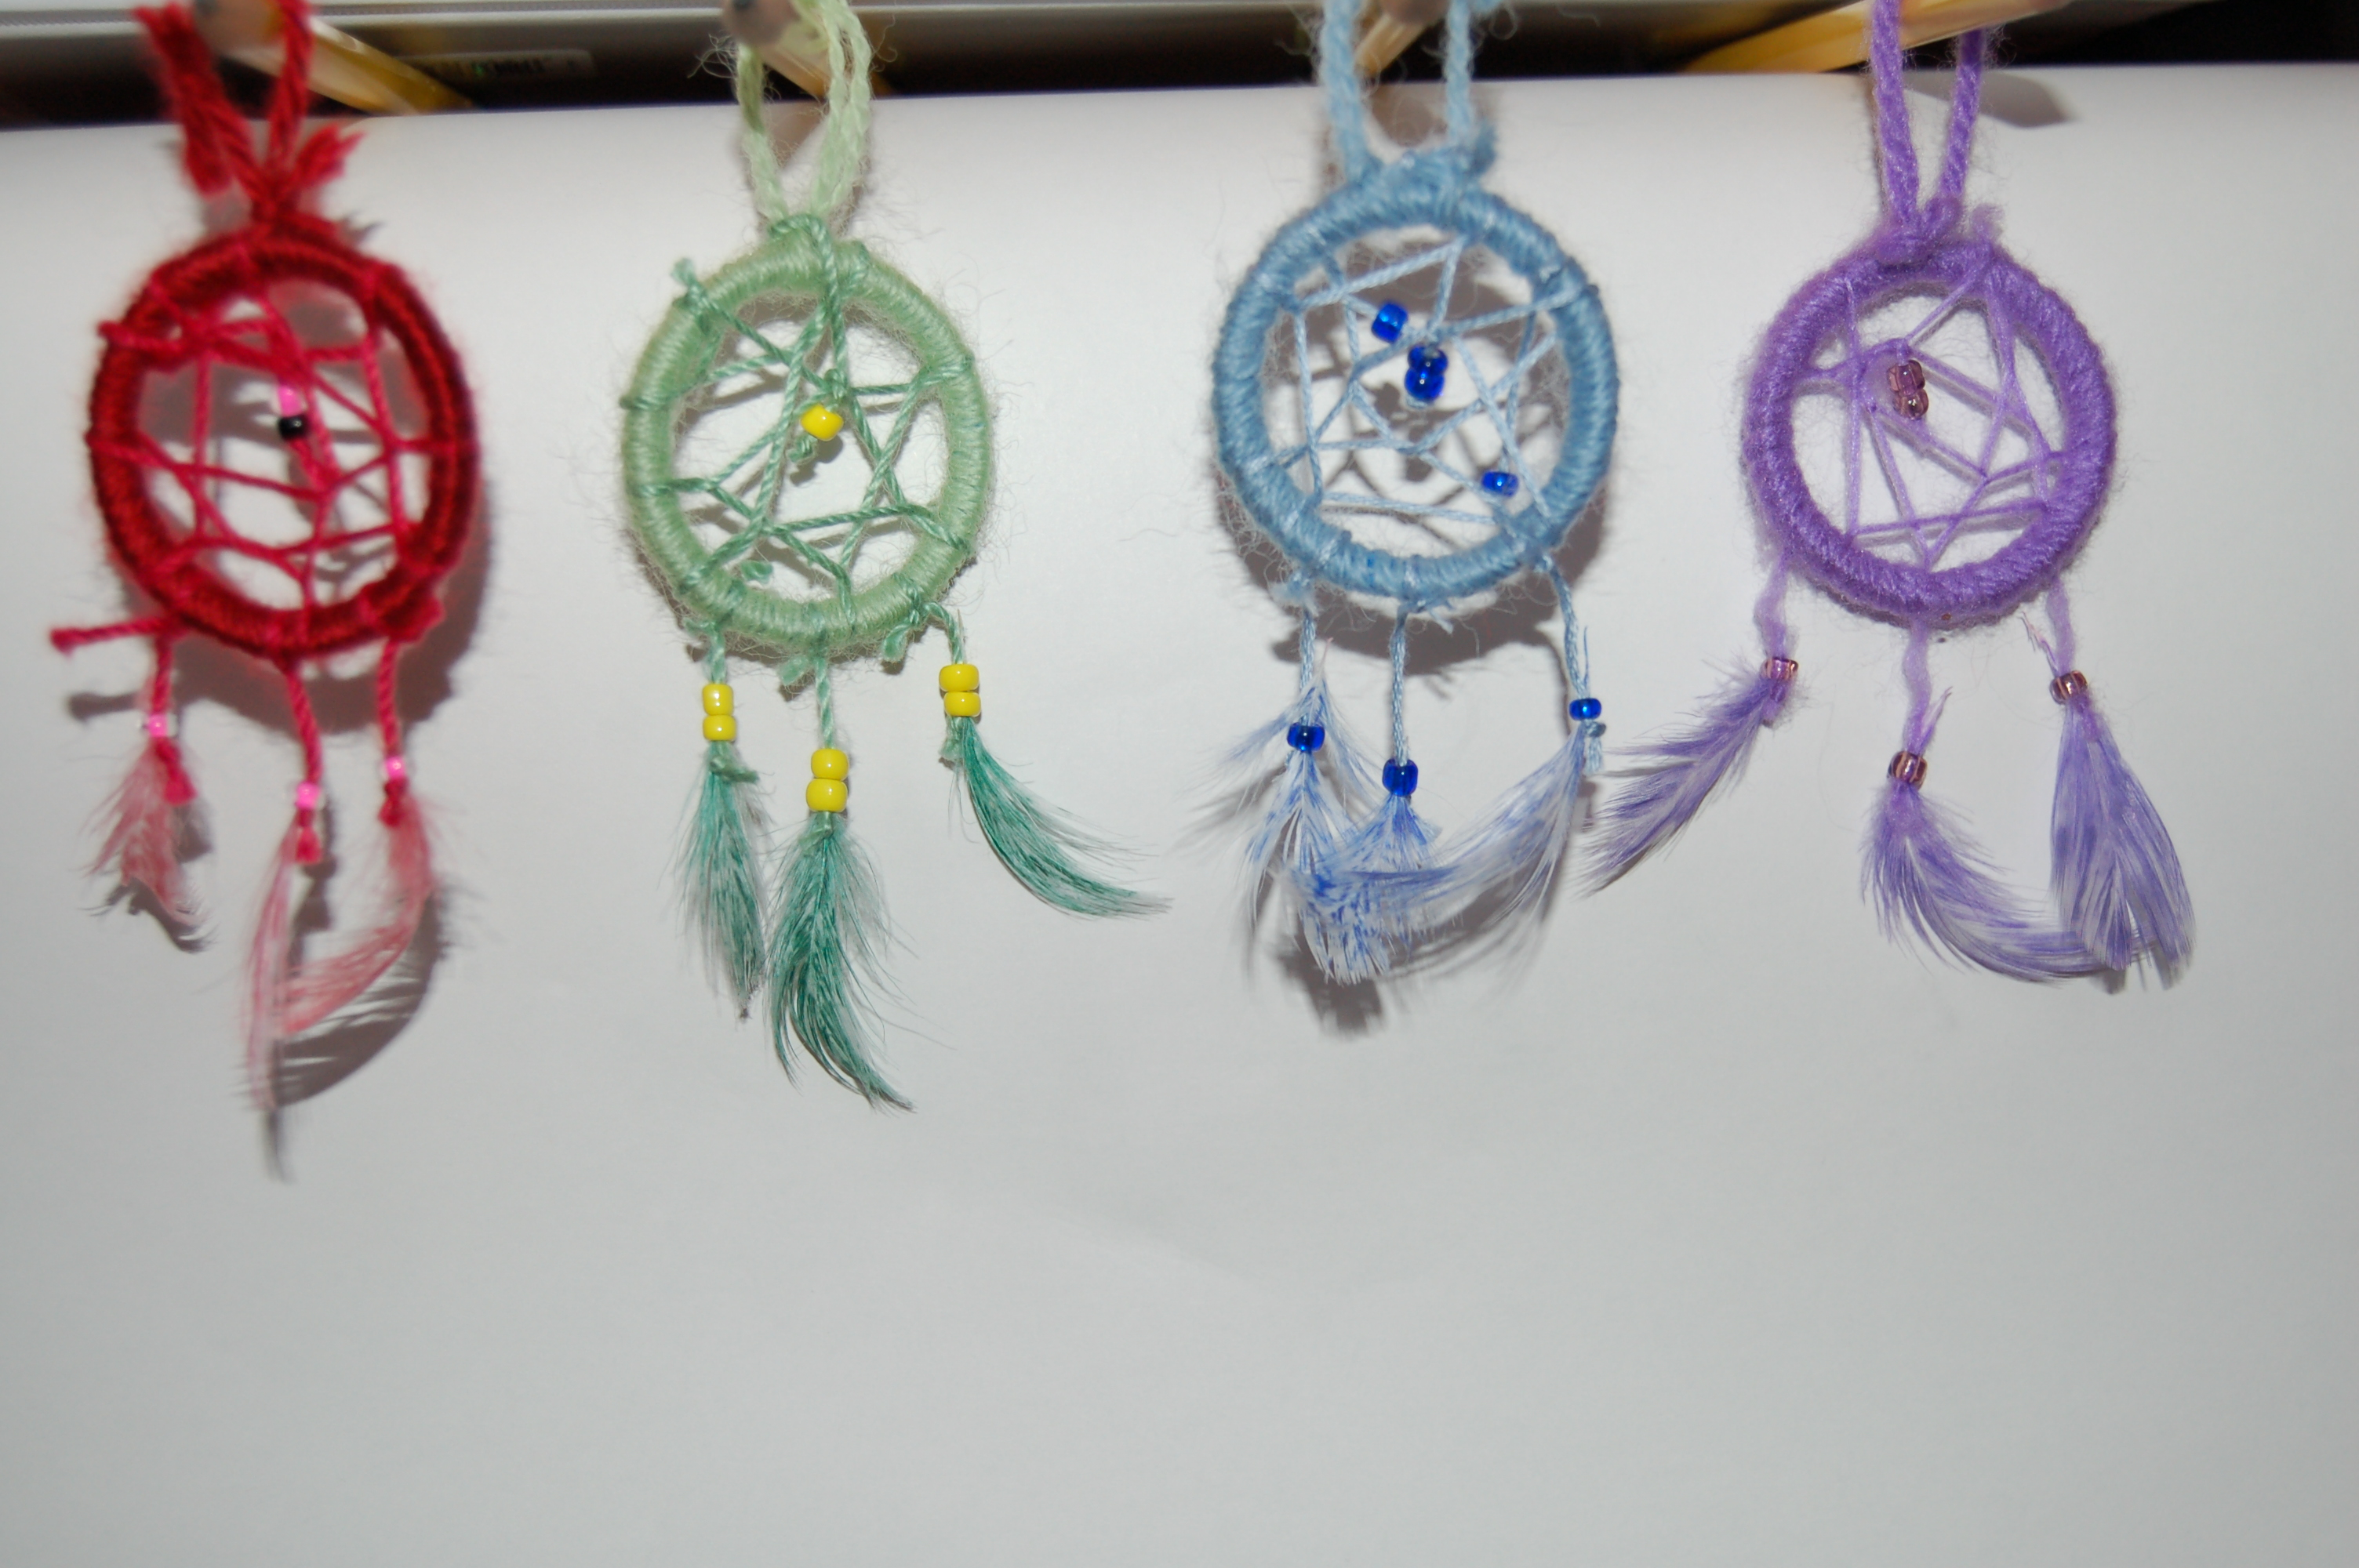 Powhatan Dream Catchers